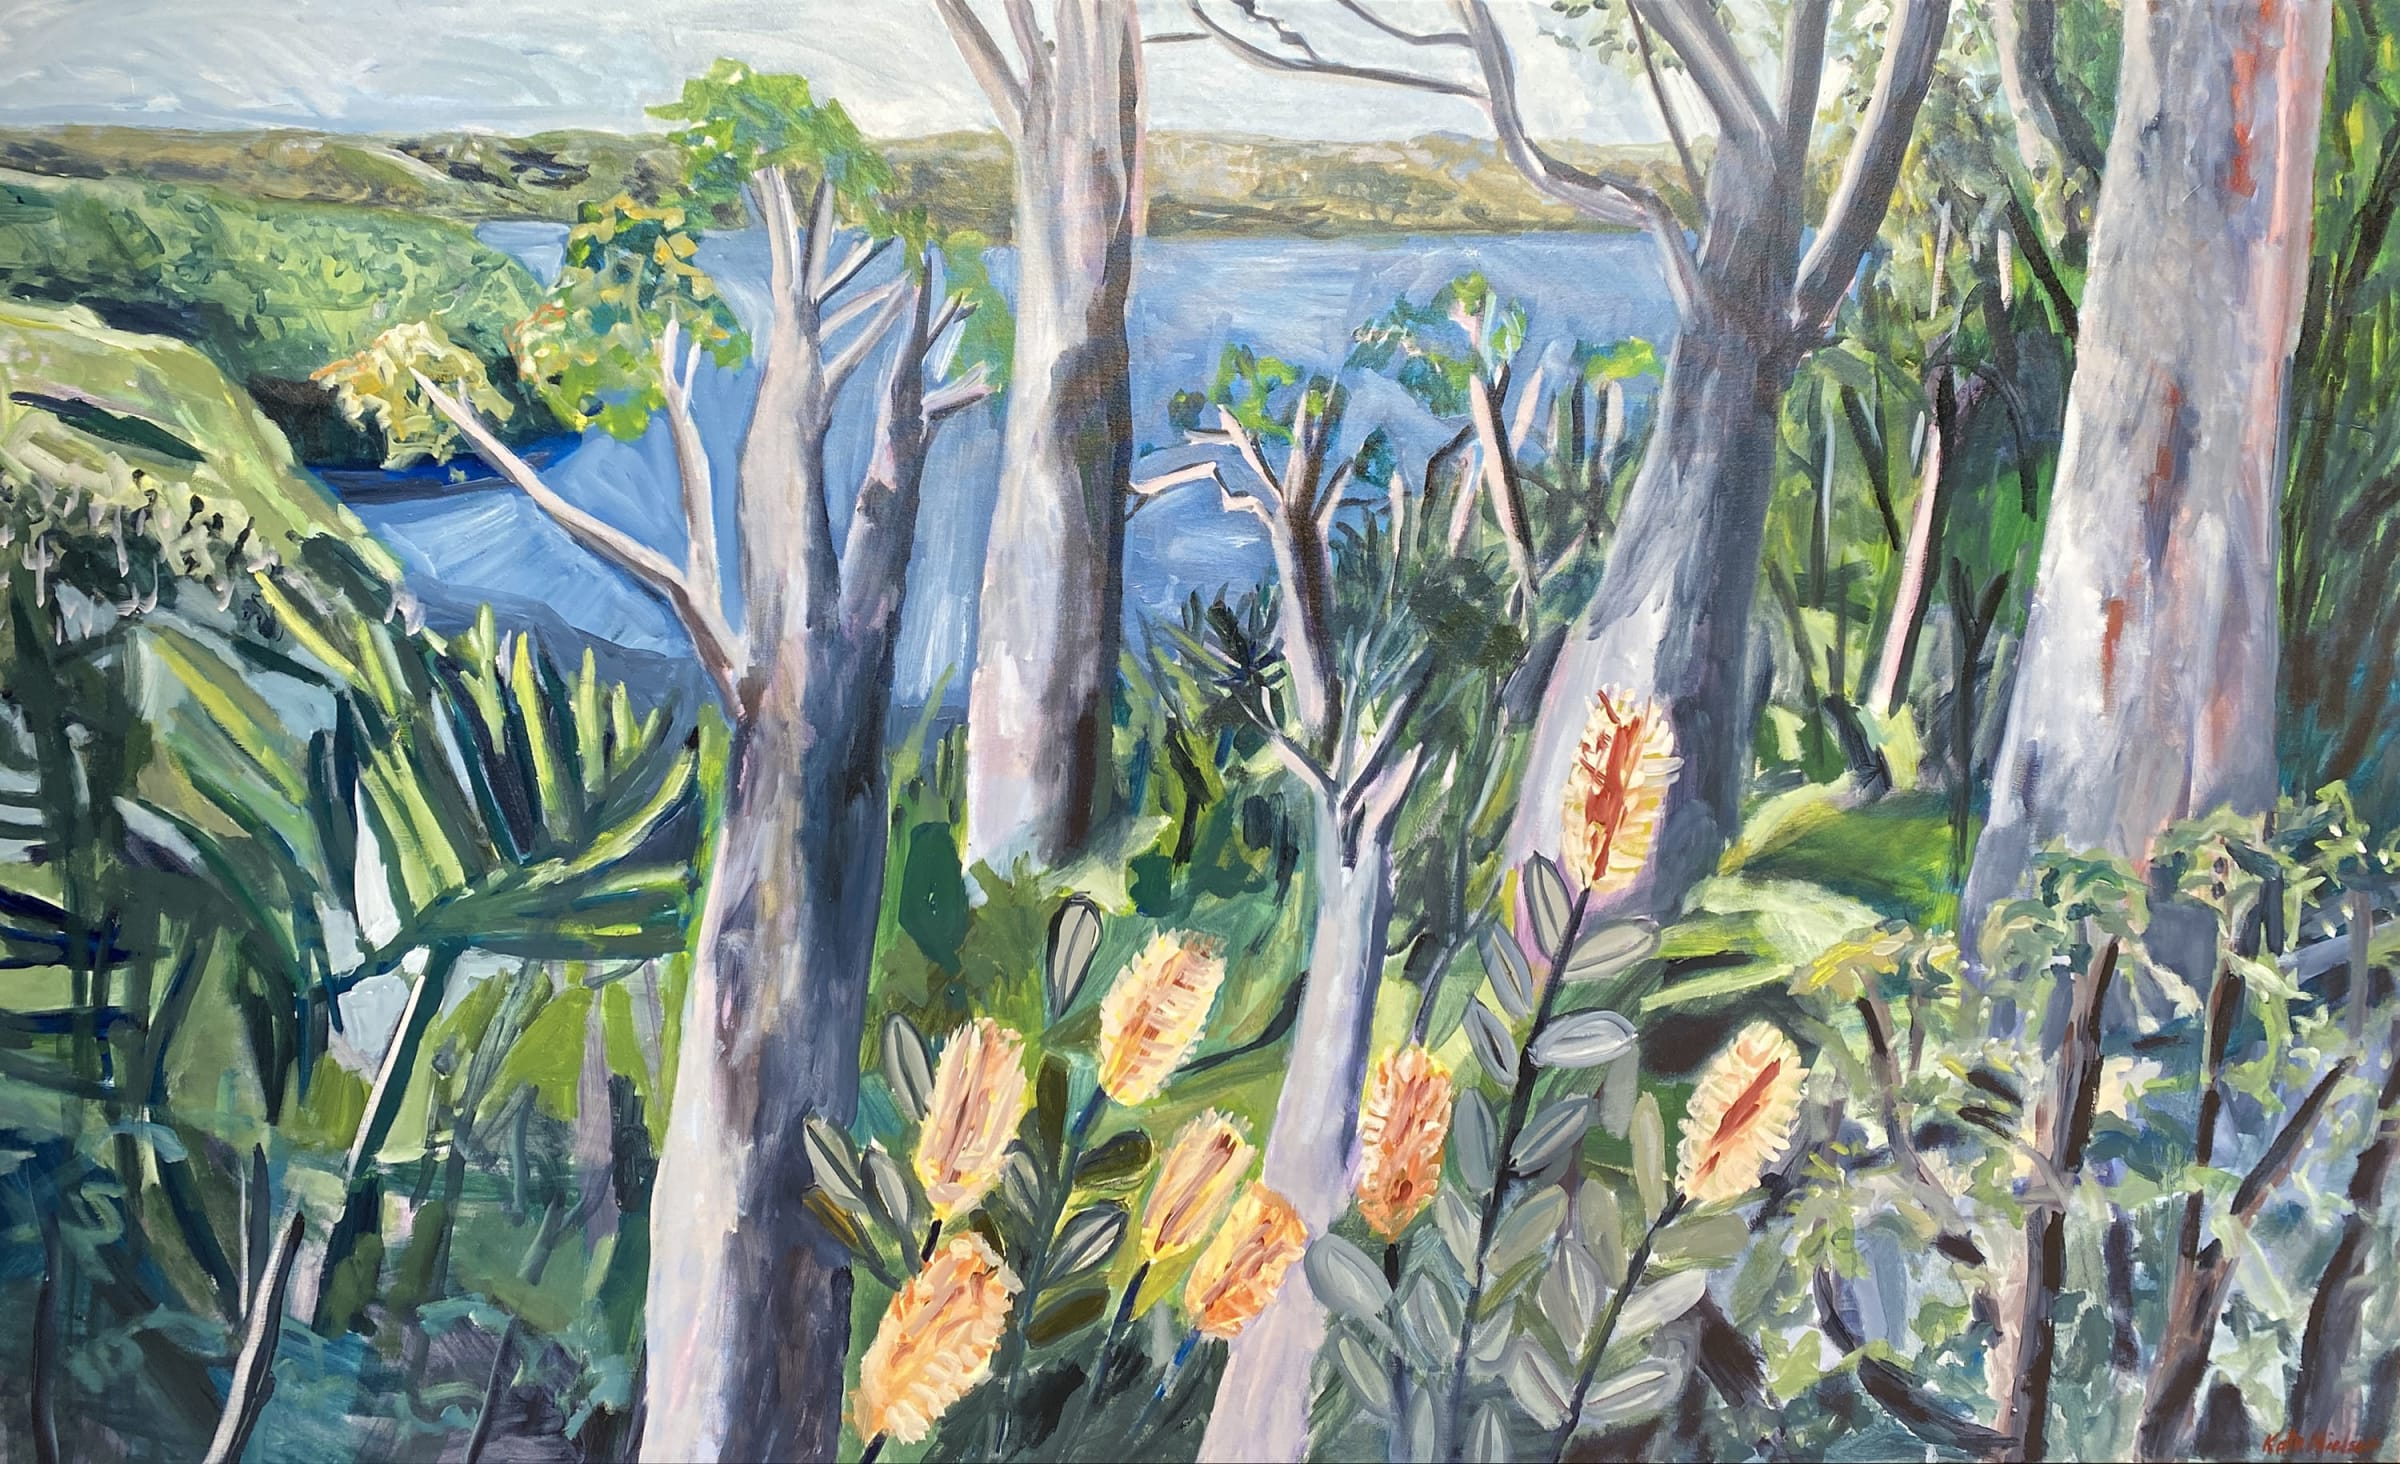 """<span class=""""link fancybox-details-link""""><a href=""""/artists/88-kate-nielsen/works/1470-kate-nielsen-view-from-taronga/"""">View Detail Page</a></span><div class=""""artist""""><strong>Kate Nielsen</strong></div> <div class=""""title""""><em>View from Taronga</em></div> <div class=""""medium"""">Oil on canvas</div> <div class=""""dimensions"""">48 x 71 inches<br /> 121 x 180 cm</div>"""